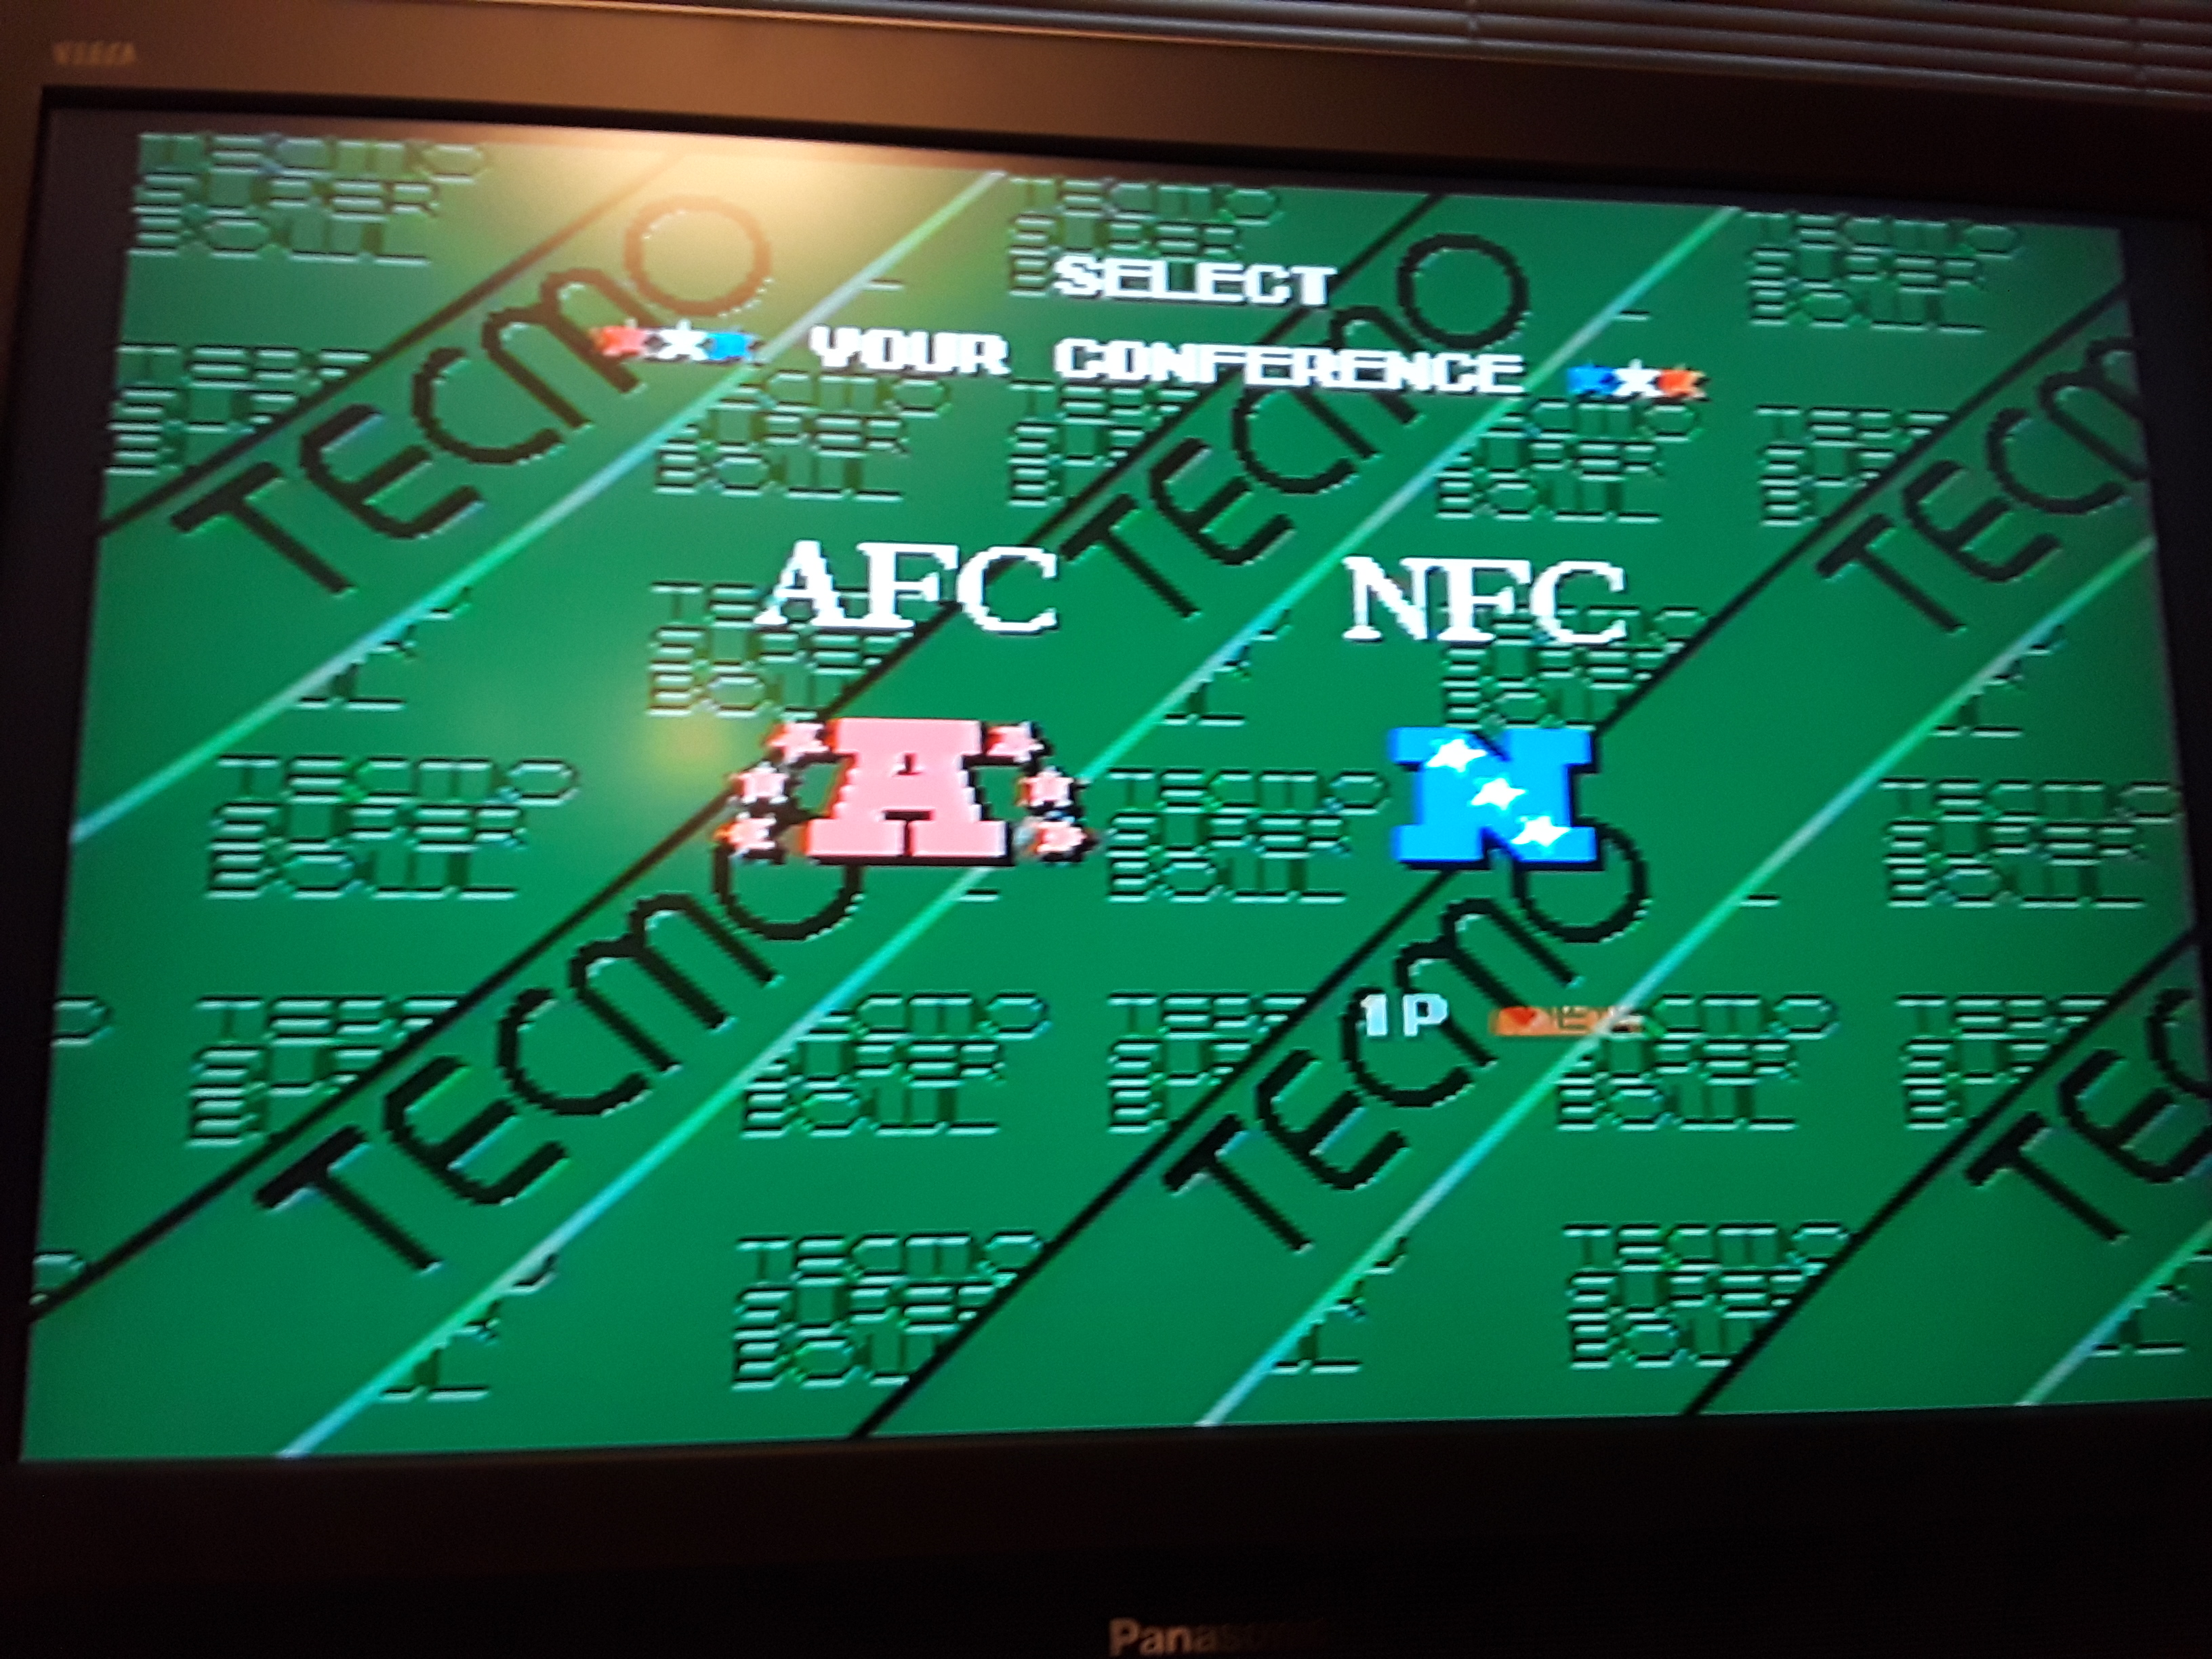 Tecmo Super Bowl [Most Receptions] [Pro Bowl] 10 points